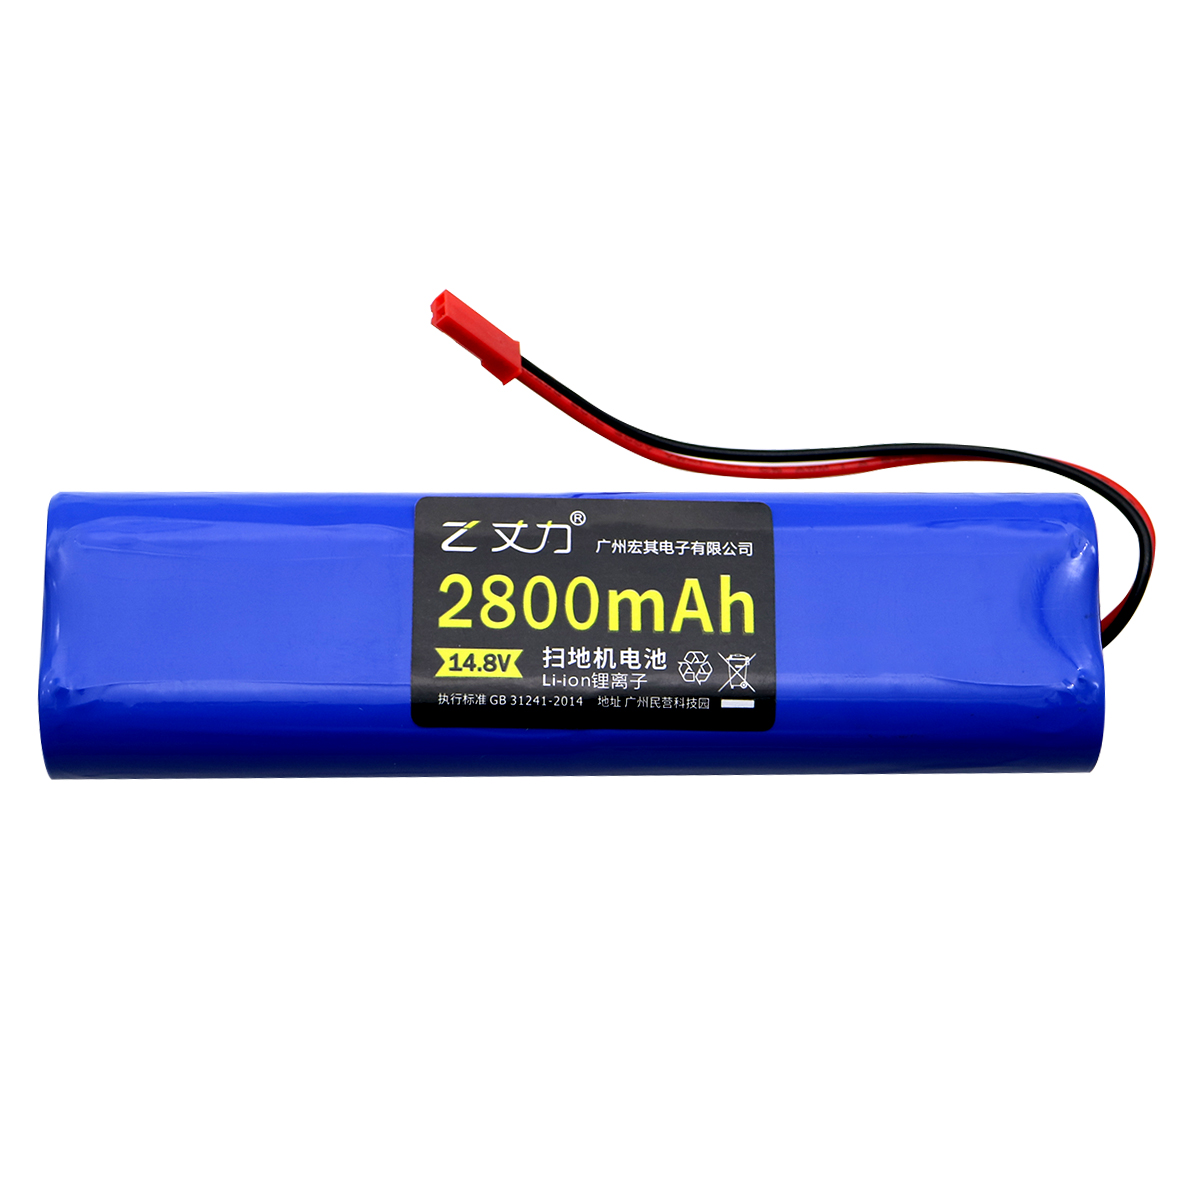 14.8V 2800mAh Rechargeable for ILIFE Battery robotic cleaner accessories parts for ilife v5s pro v5spro X750 v3s pro Vacuum Cleaner Parts     - title=